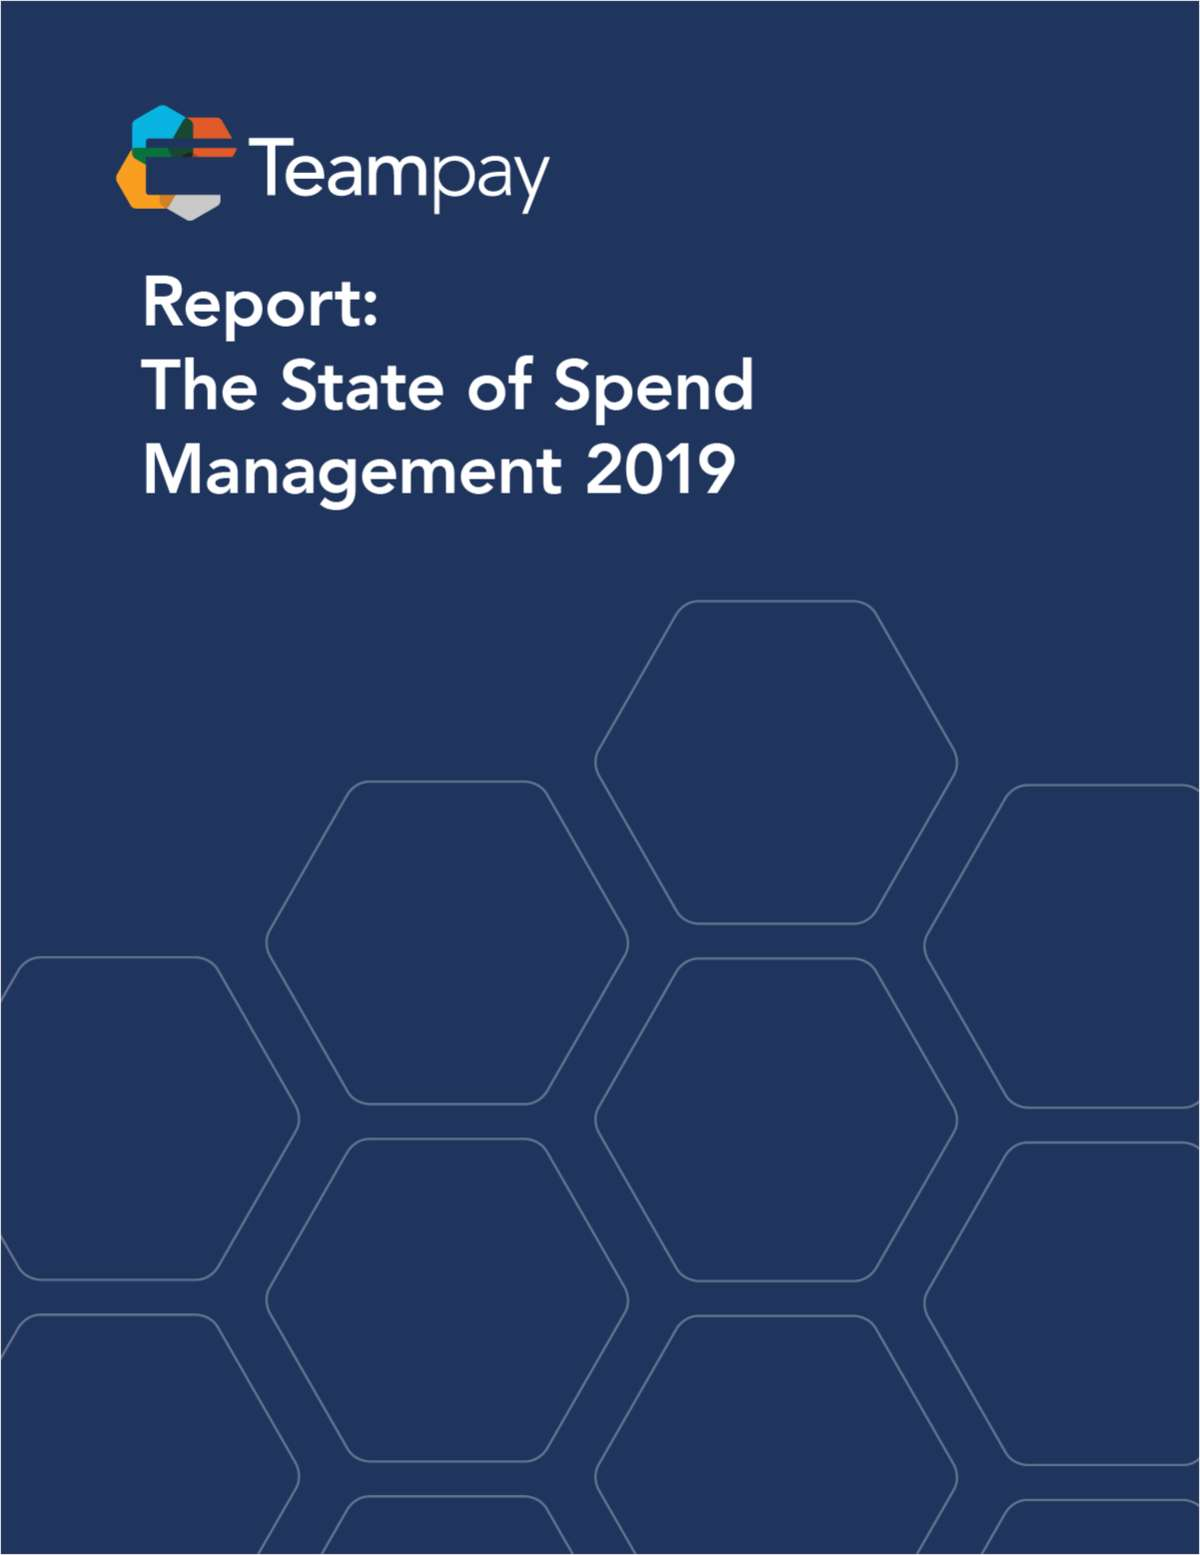 Report: The State of Spend Management 2019